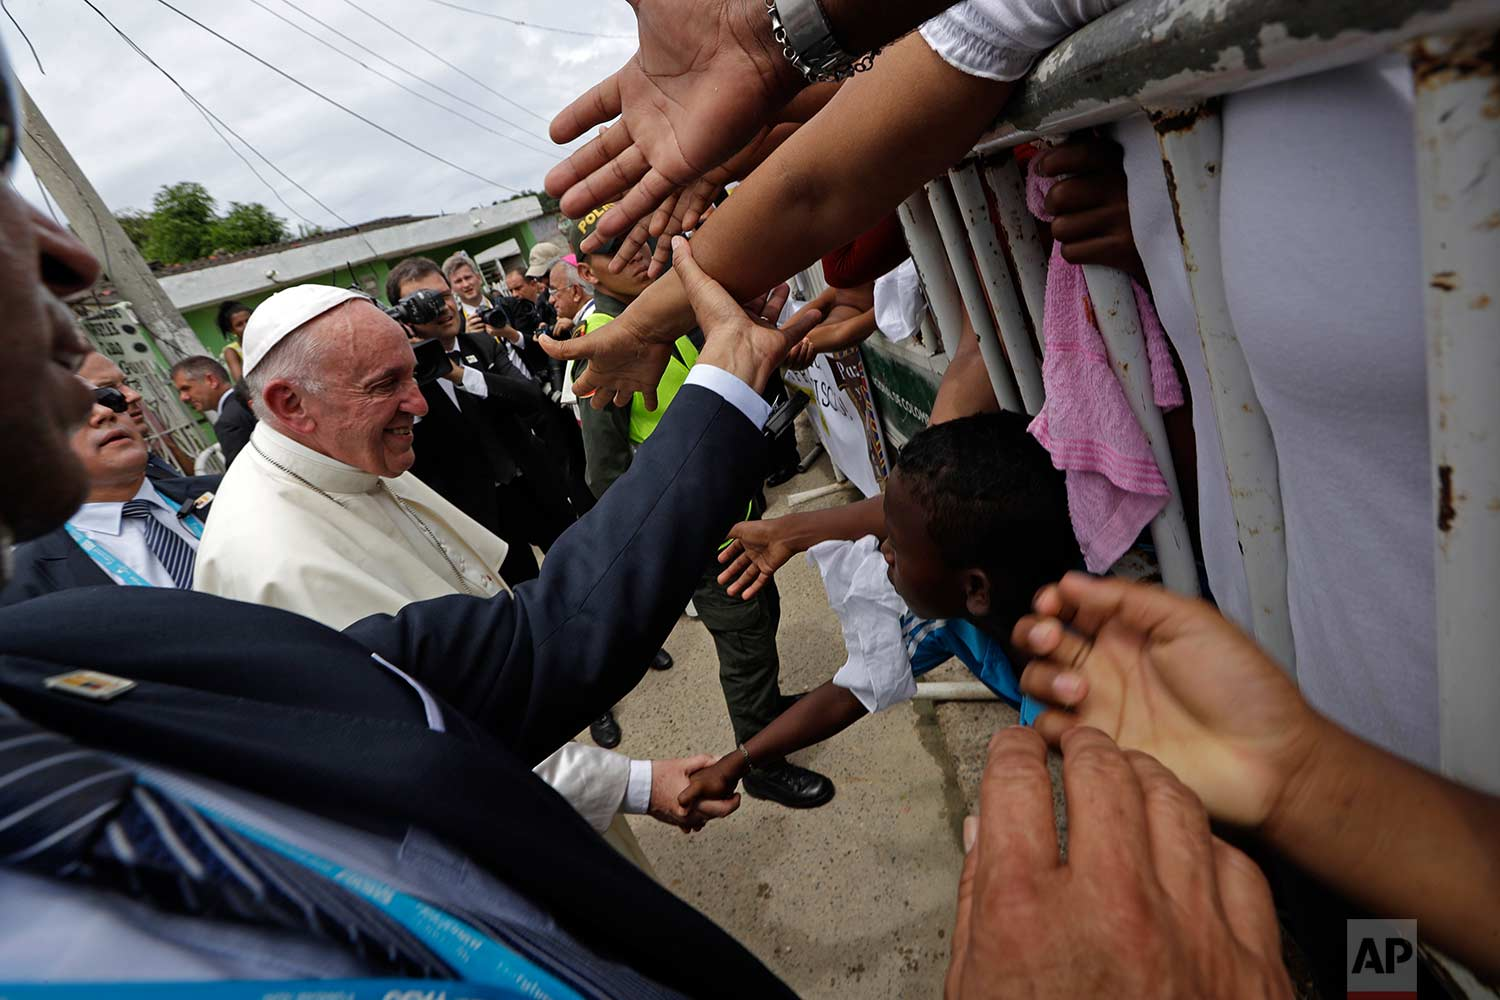 Pope Francis' greets people at his arrival at the San Francisco neighborhood in Cartagena, Colombia, Sunday, Sept. 10, 2017. (AP Photo/Andrew Medichini)